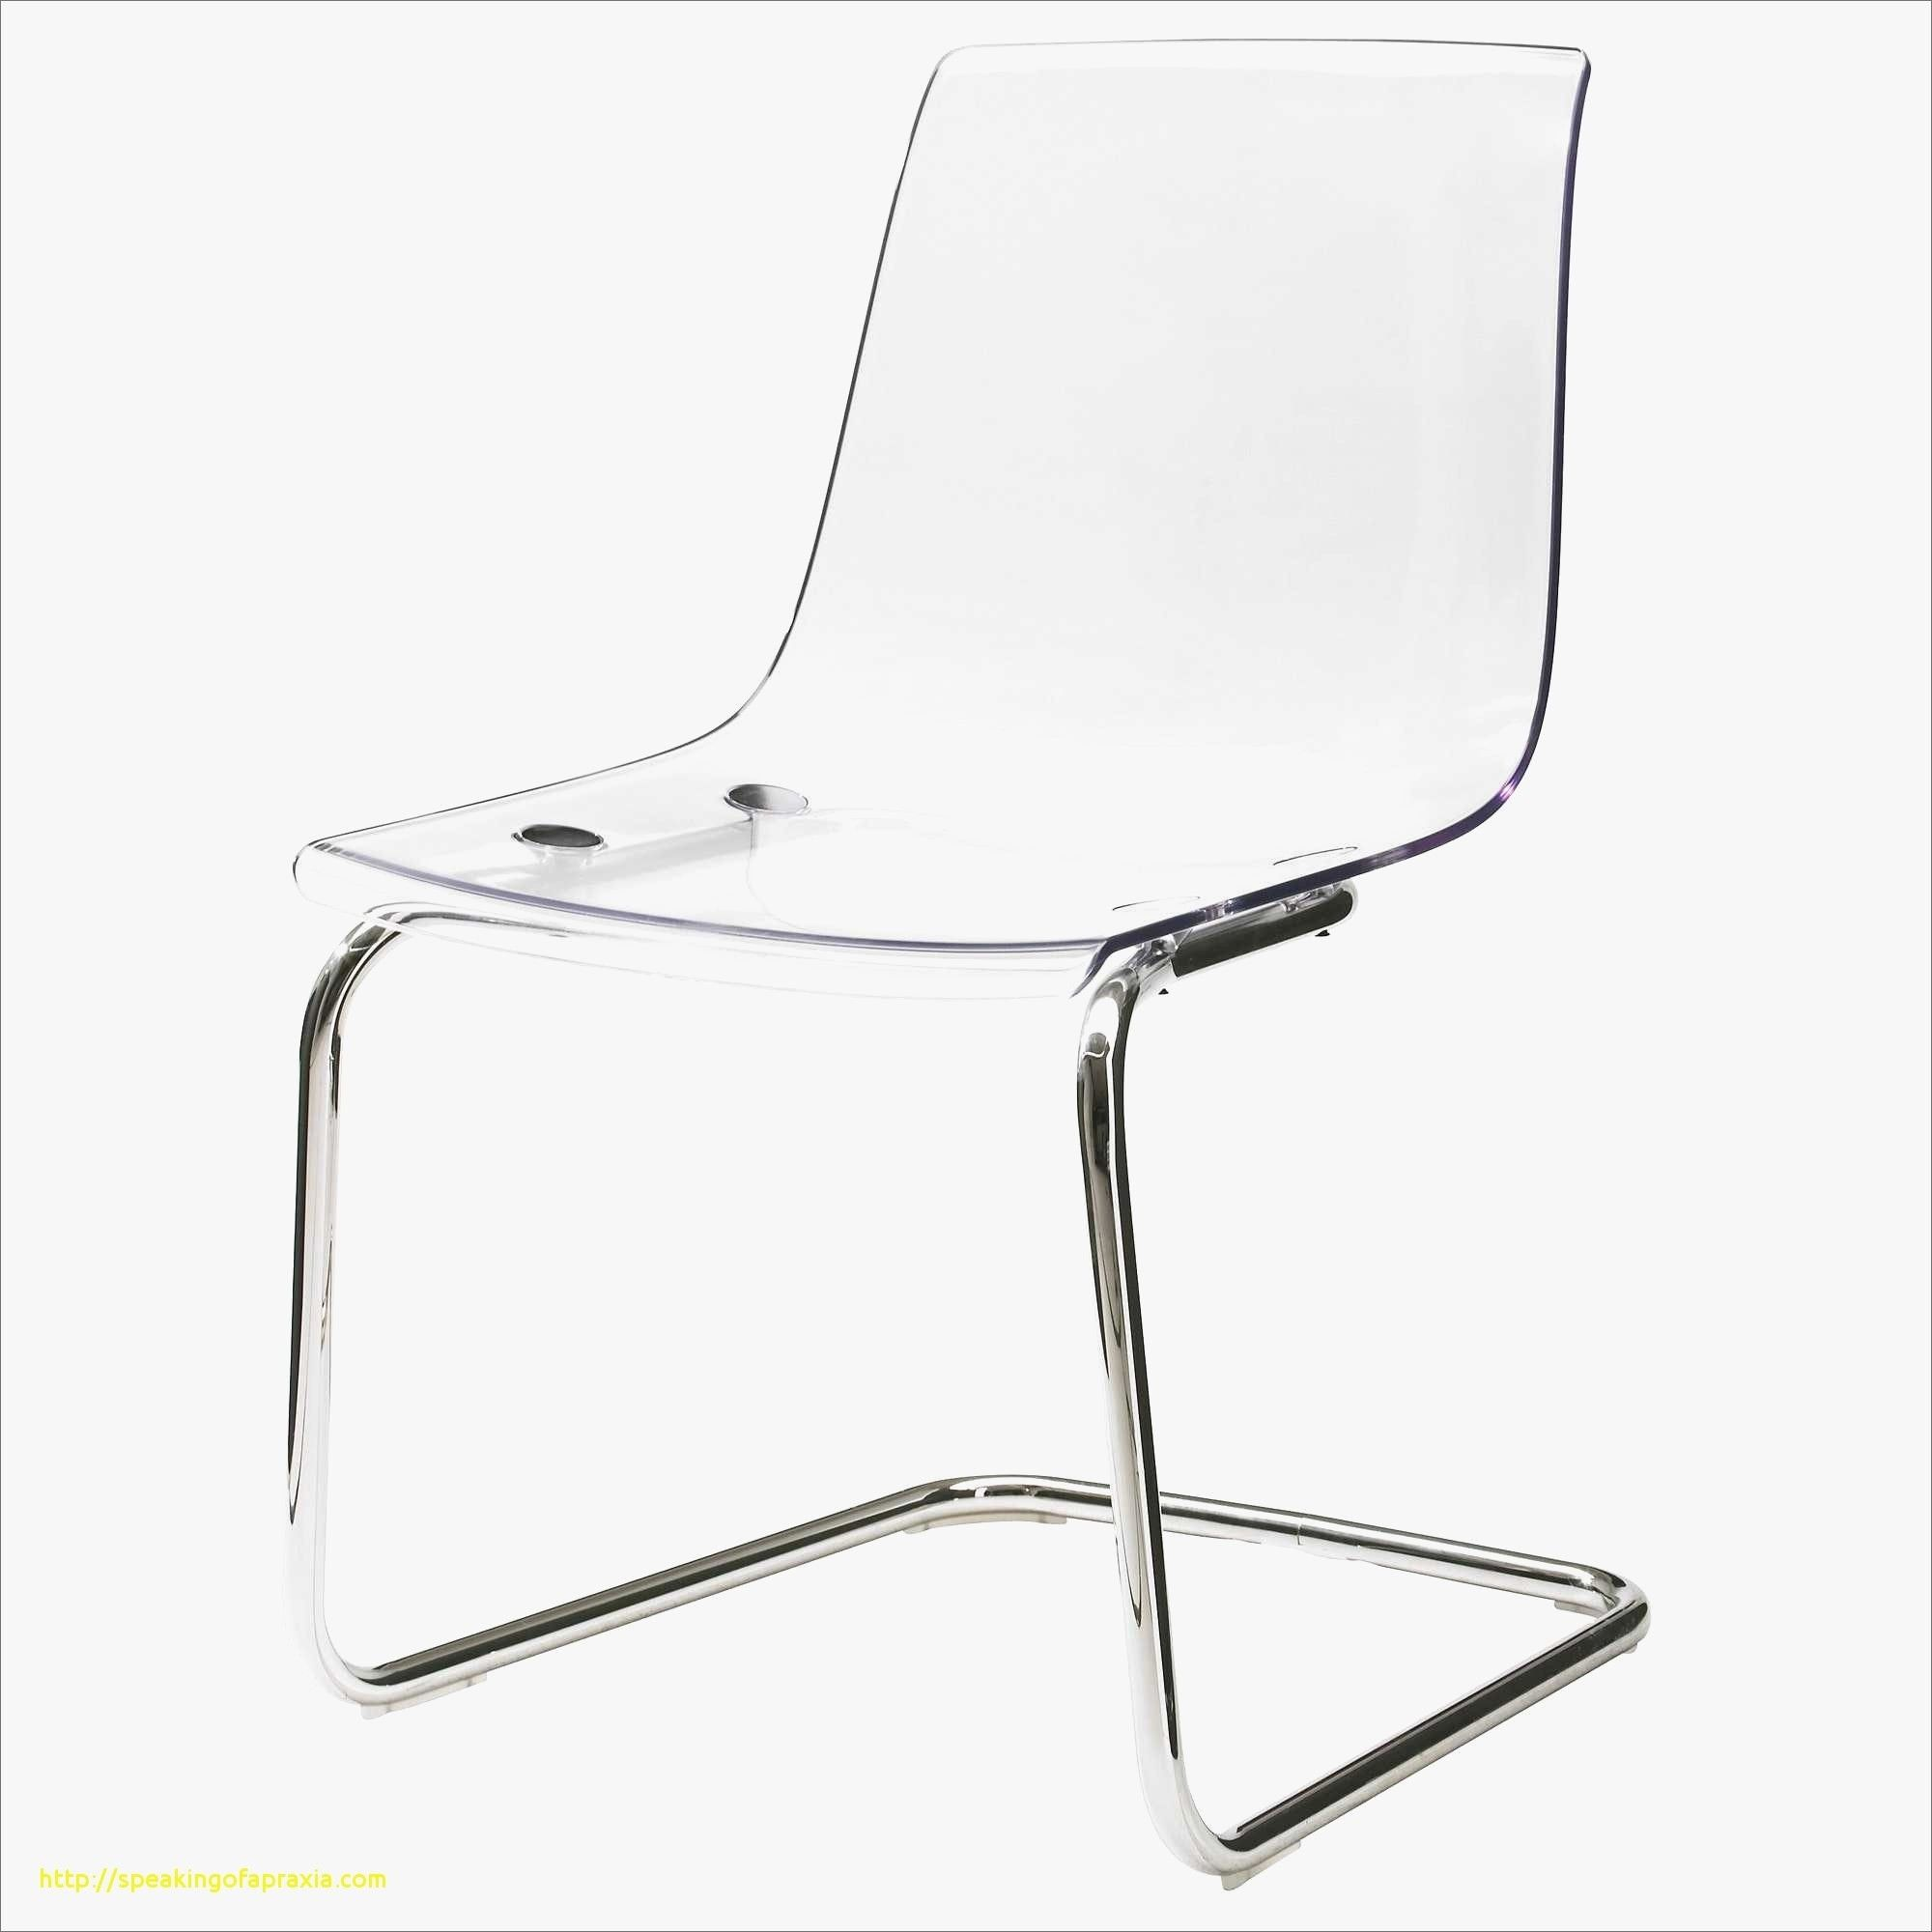 Elegant Chaise Transparente Alinea Leather Dining Room Chairs Home Bar Furniture Used Office Chairs